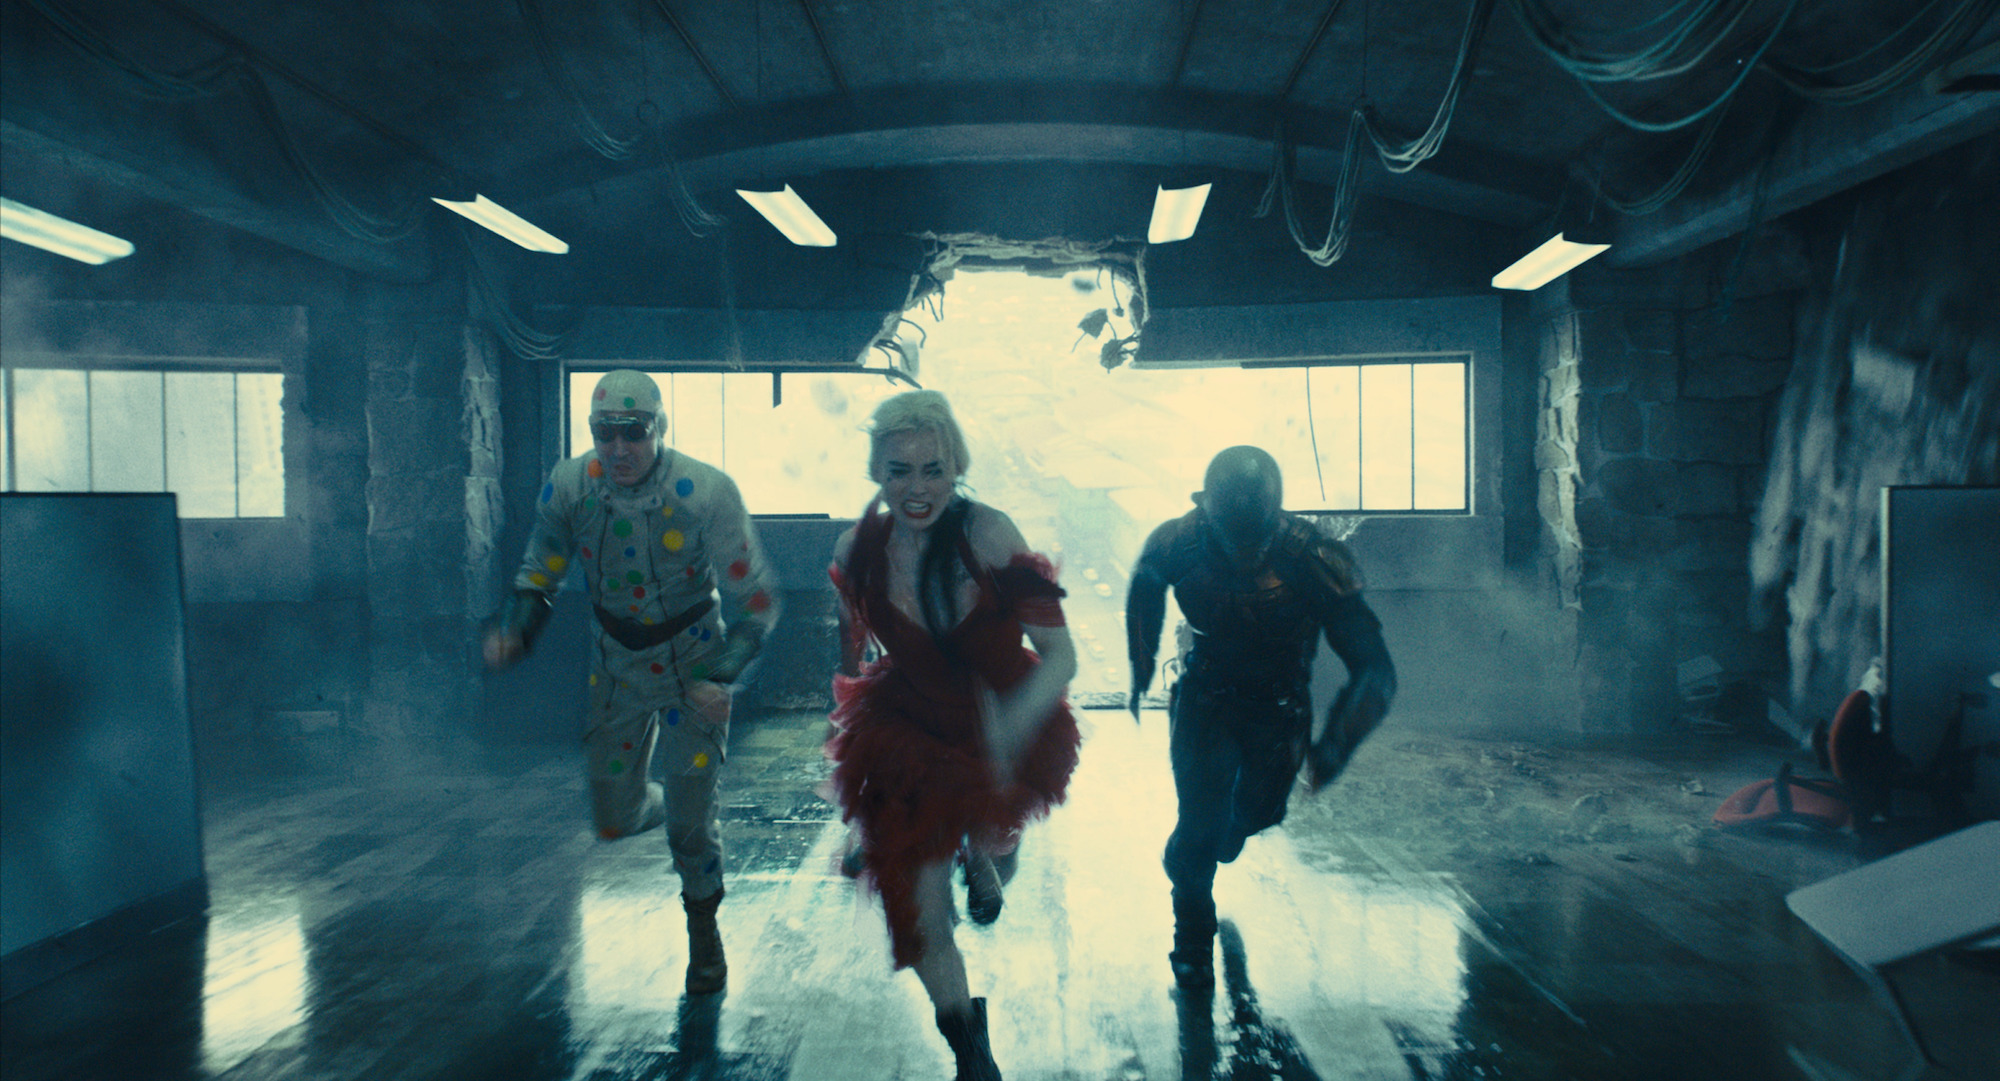 Margot Robbie as Harley Quinn in 'The Suicide Squad